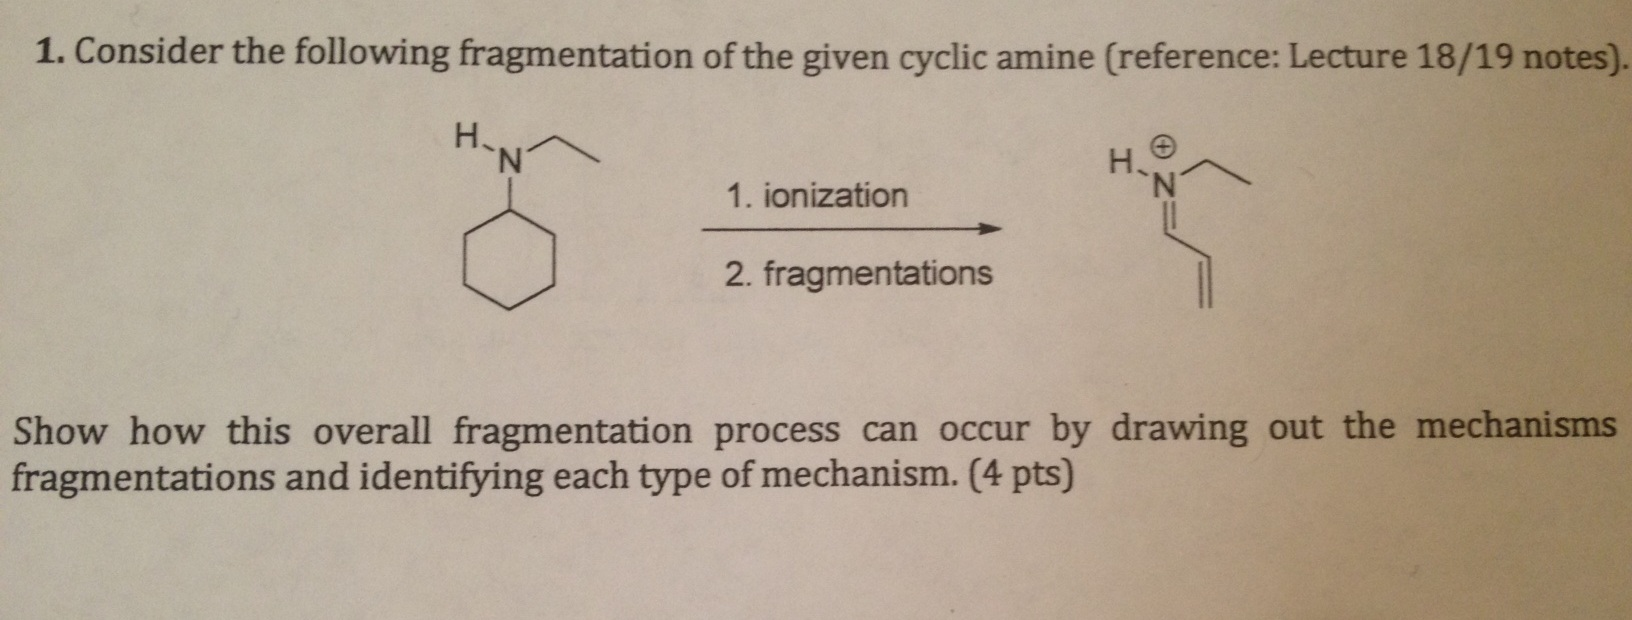 Consider the following fragmentation of the given